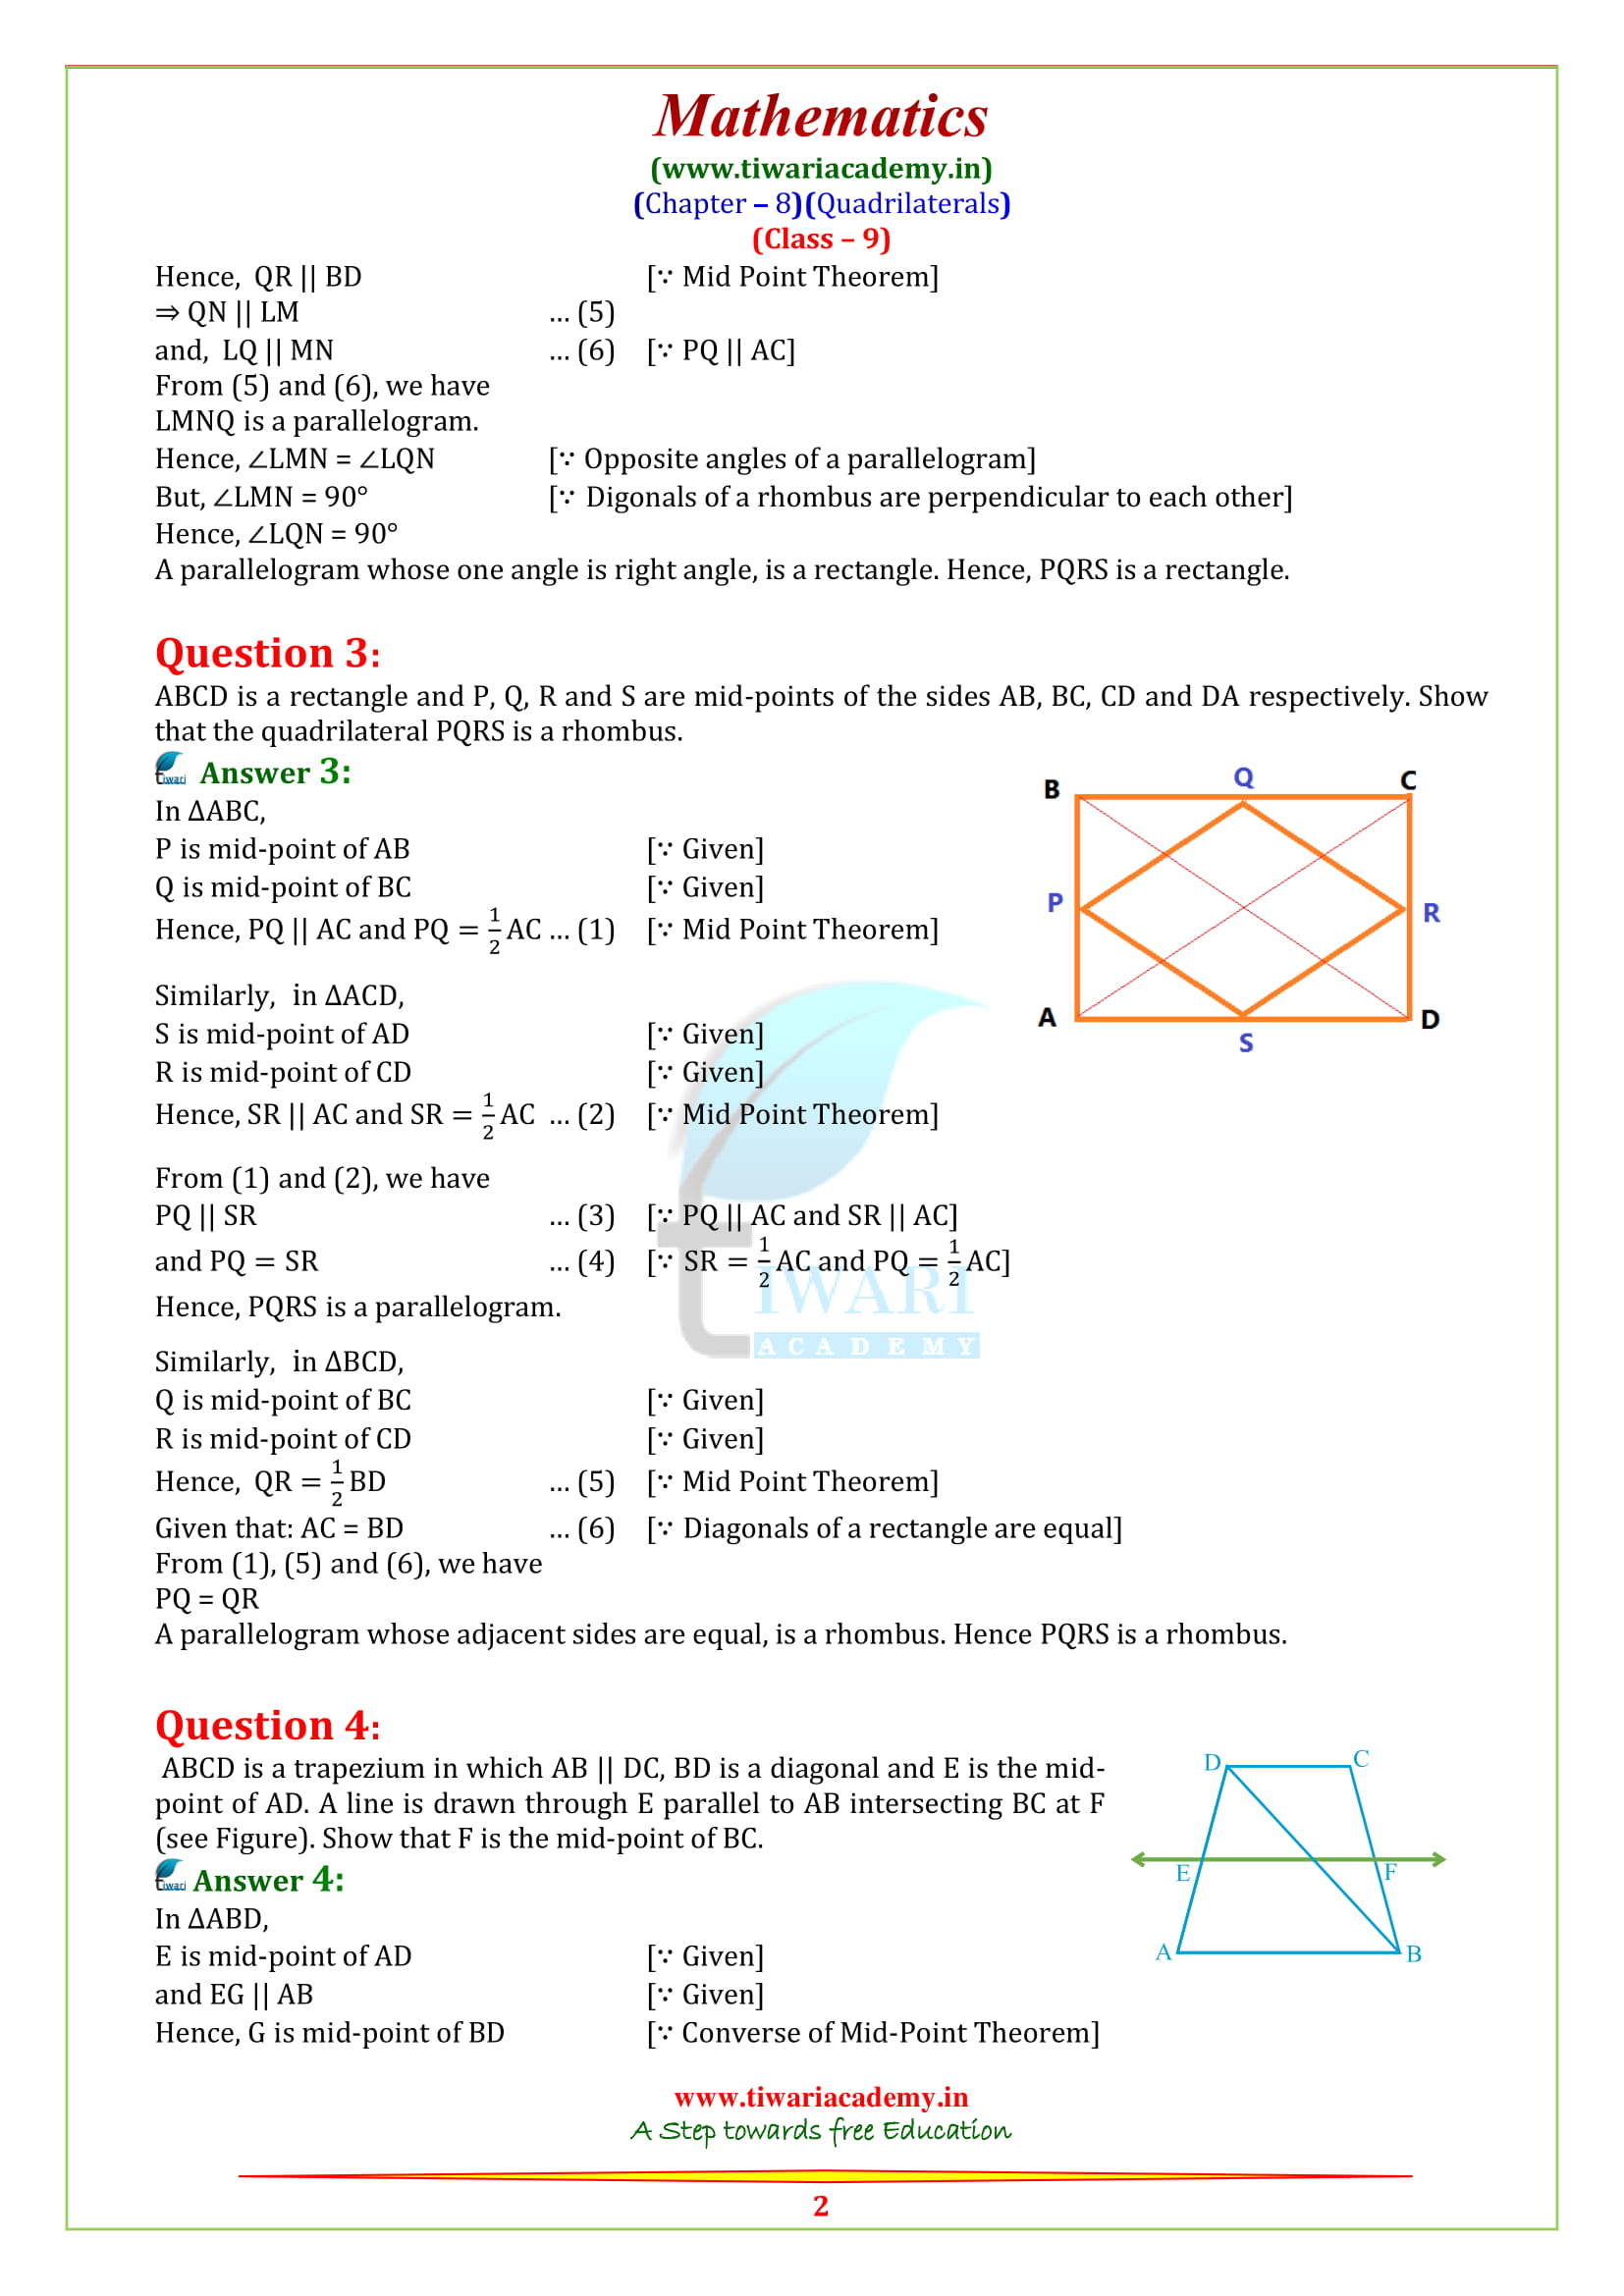 9 Maths exercise 8.2 sols updated on new syllabus 2018-19